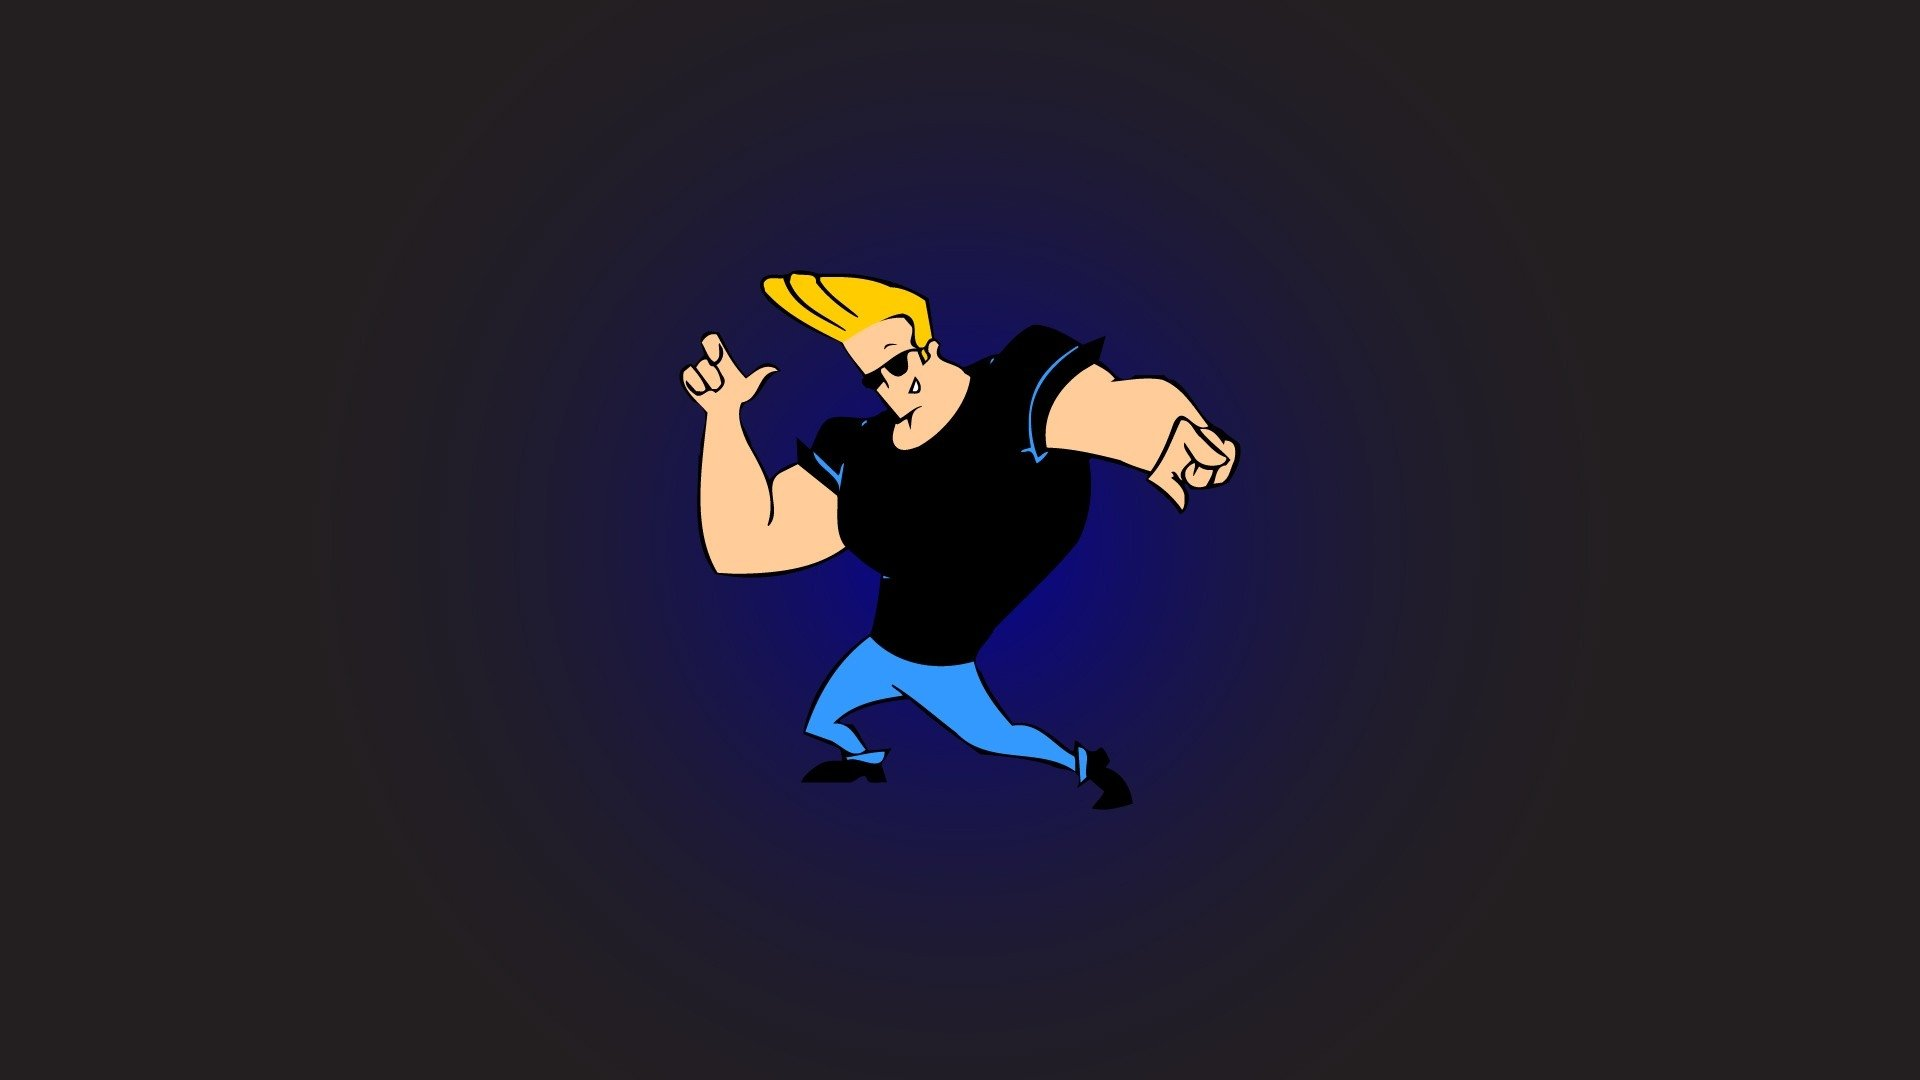 Johnny Bravo Fondo De Pantalla HD